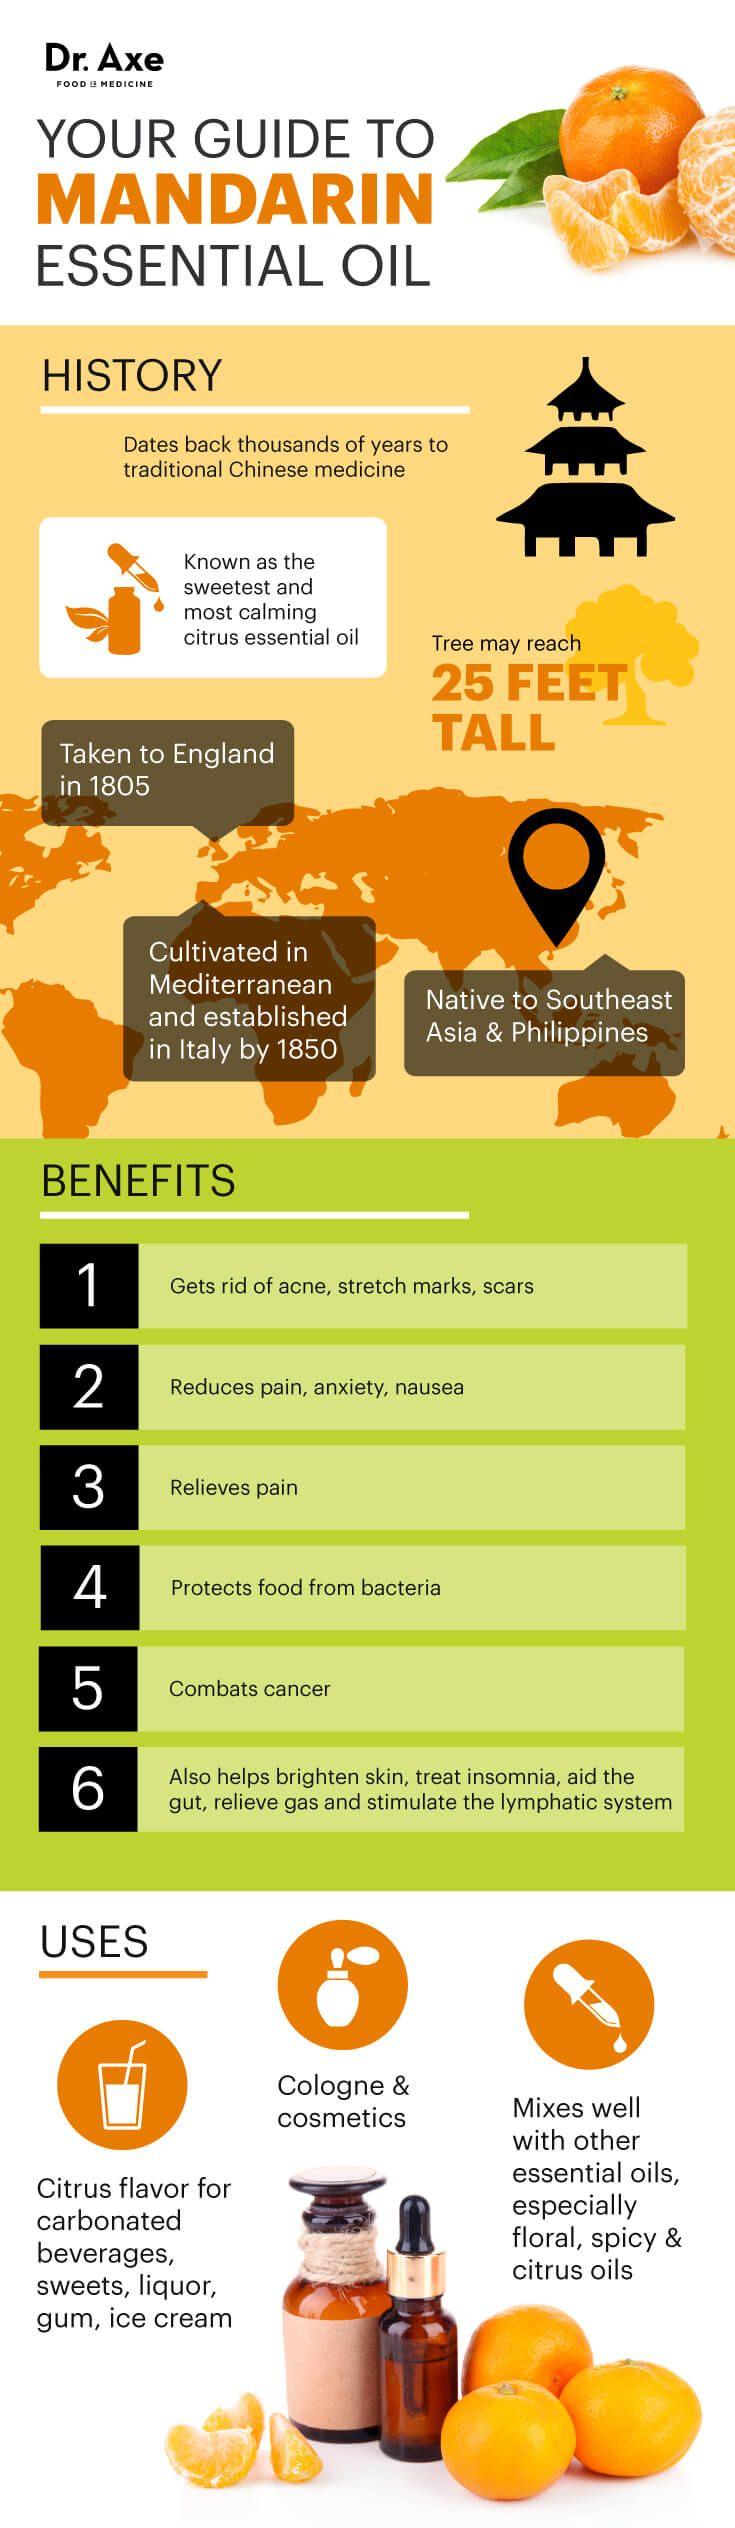 All about mandarin essential oil - Dr. Axe http://www.draxe.com #health #holistic #natural